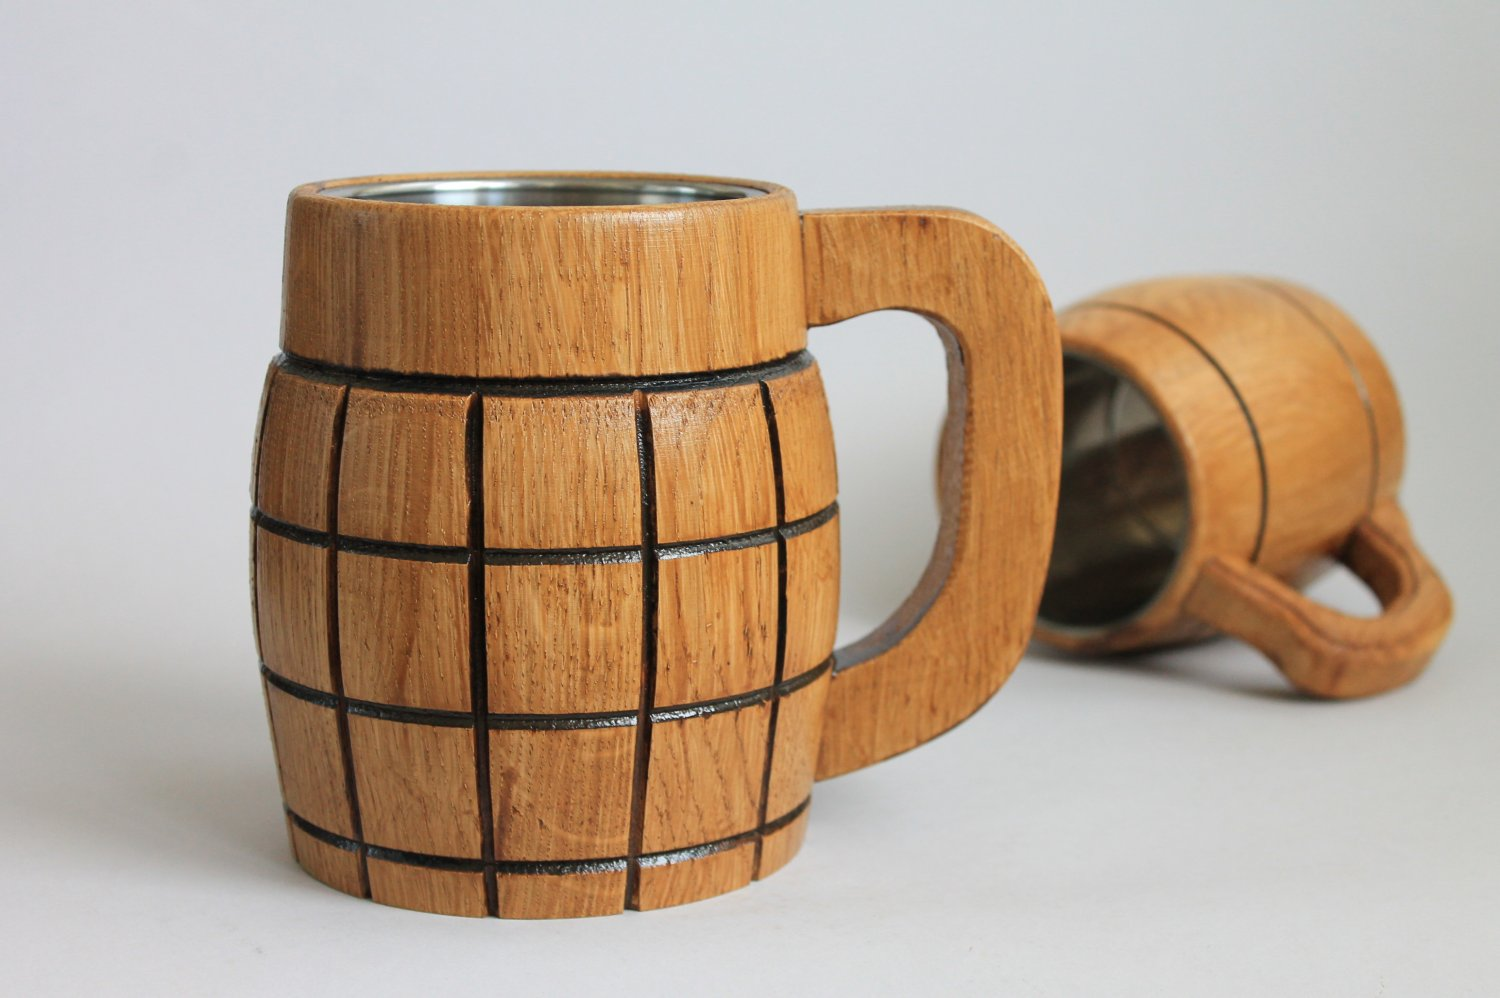 Large Beer Mug with Metal Inside Made of Wood Eco Friendly Oak, Mug for the Best Man Gift